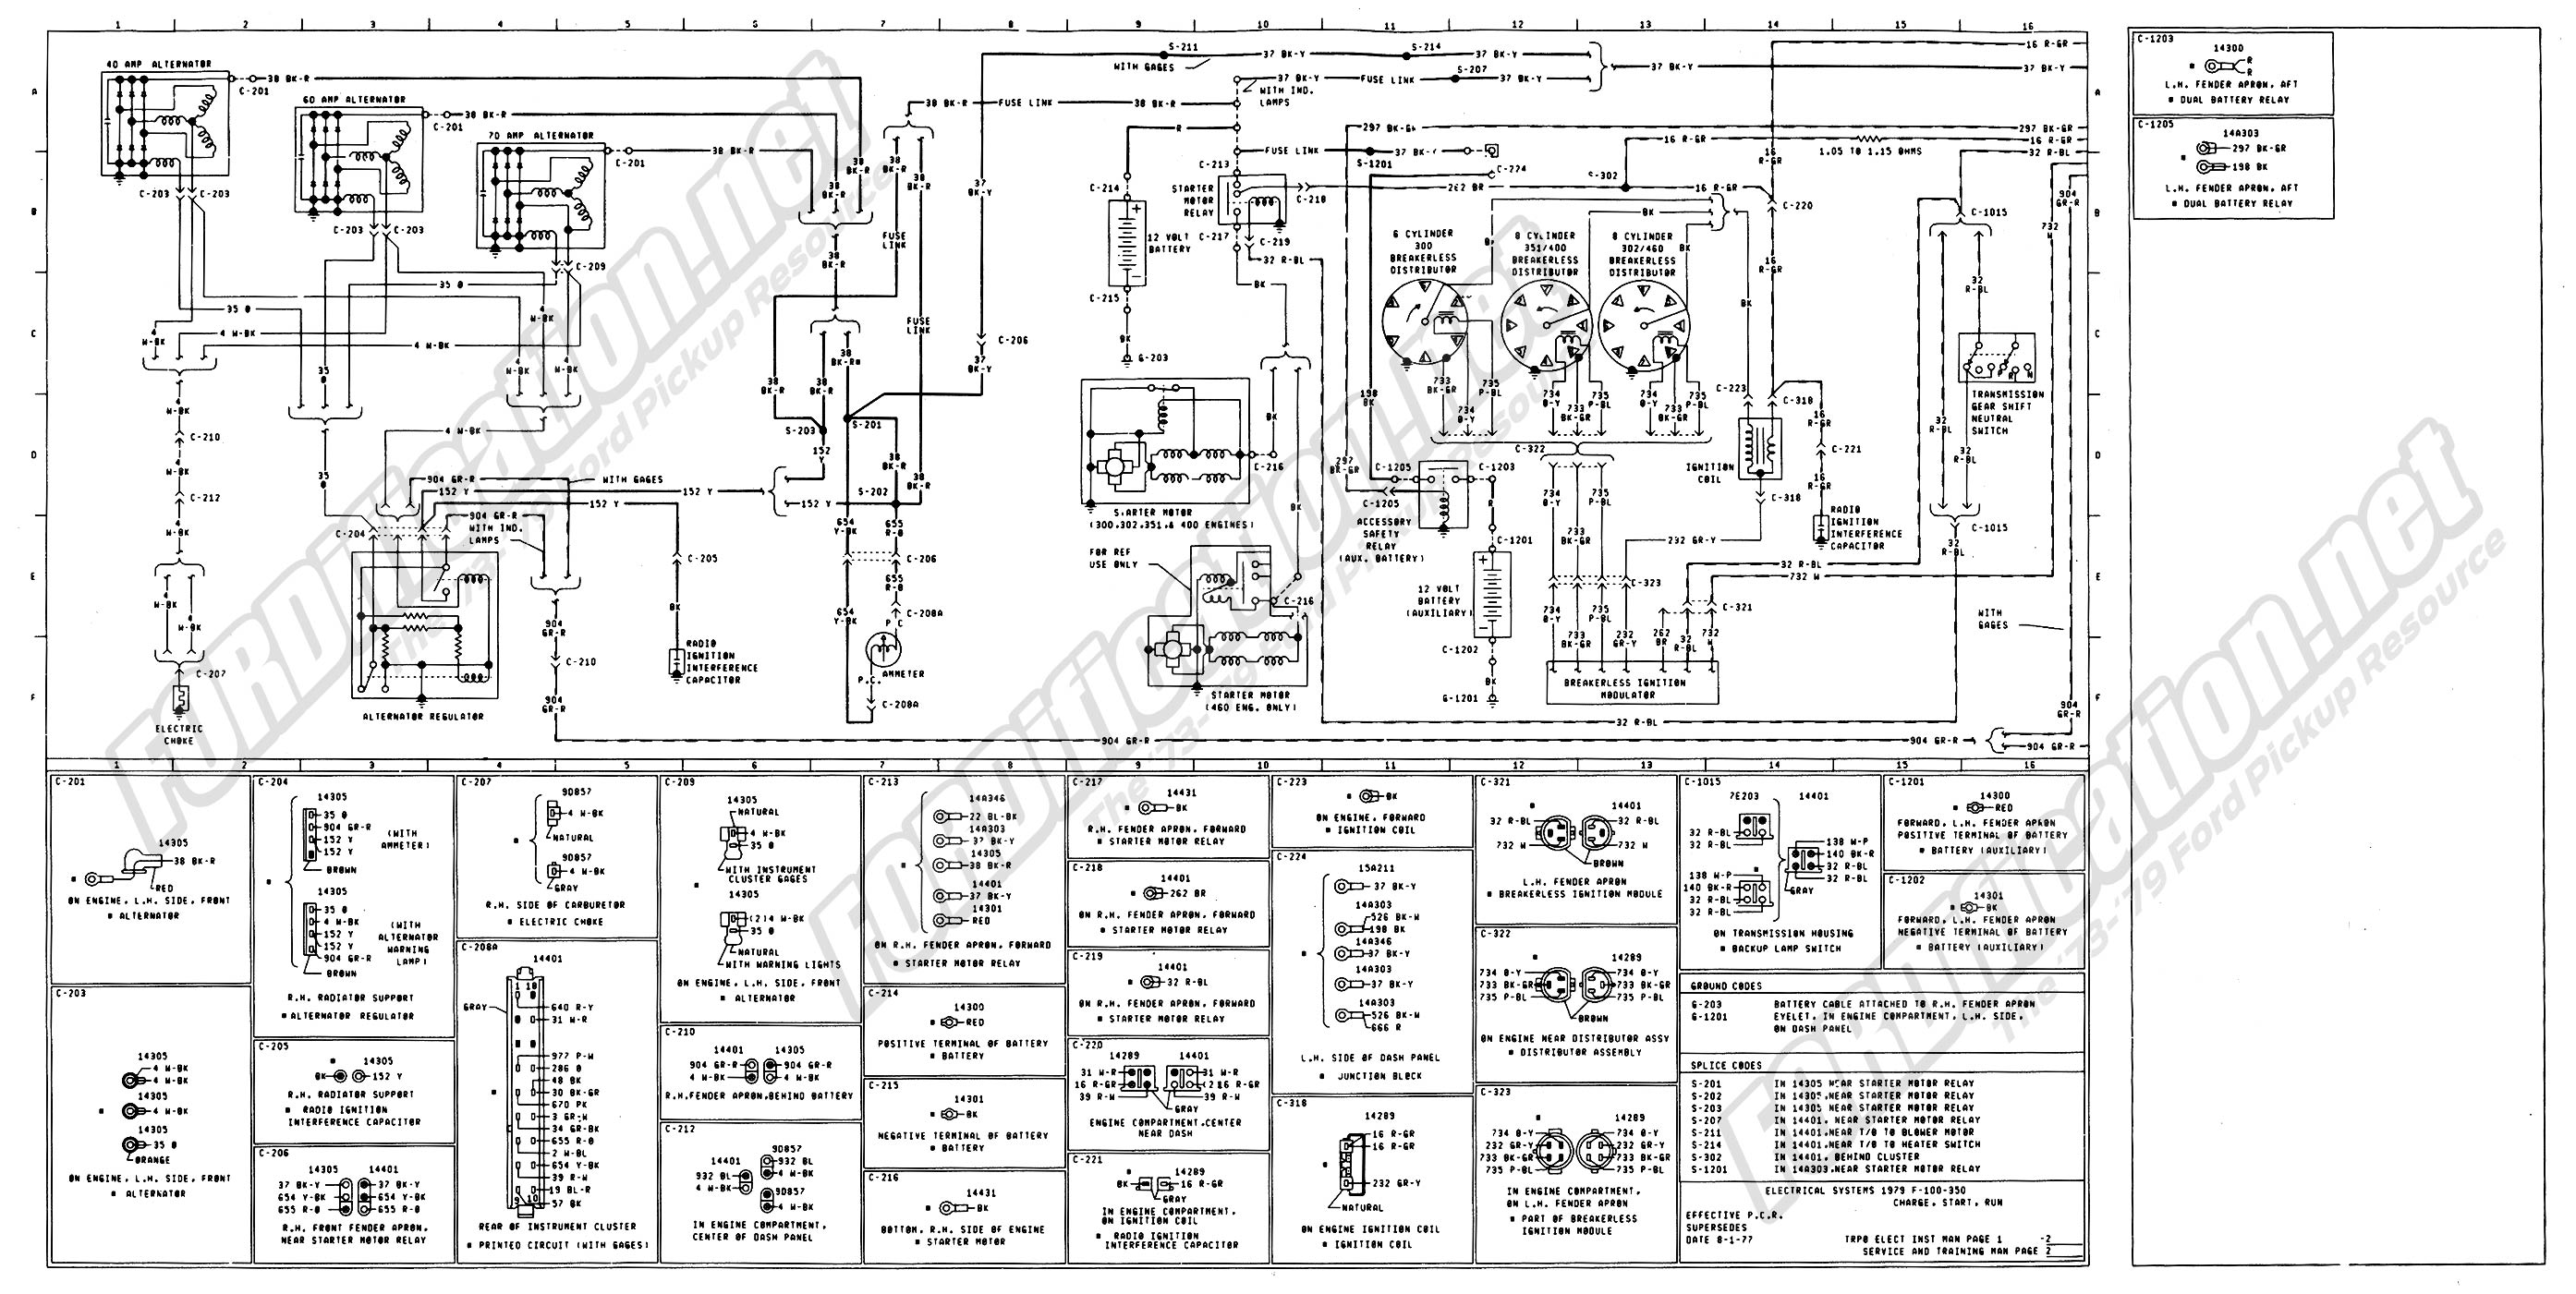 wiring_79master_2of9 1975 f150 ignition wiring diagram 97 f150 wiring diagram \u2022 wiring 1986 ford f150 ignition wiring diagram at creativeand.co